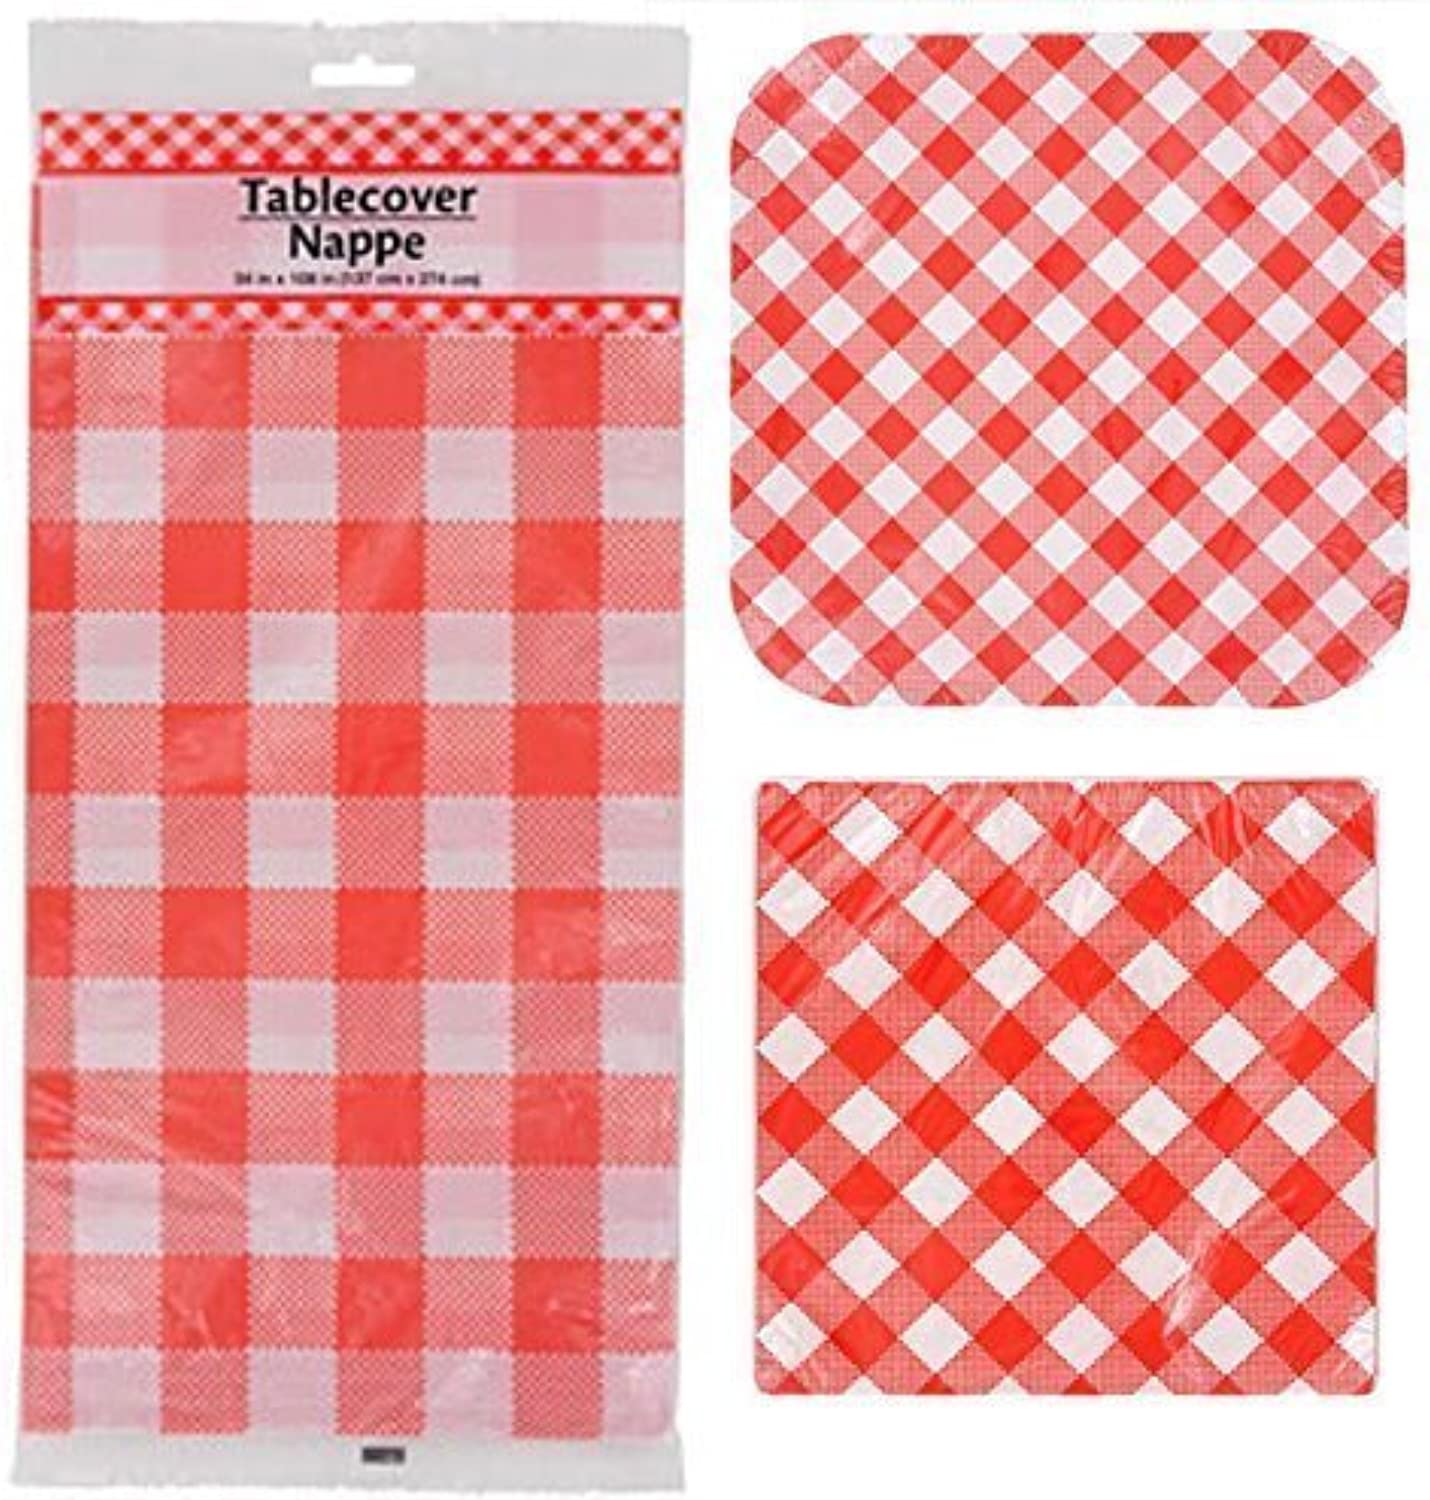 Red Paper Plates and Napkins 14 Count 9  Square Plates, 20 Count 13  Napkins and Table Cover In-33